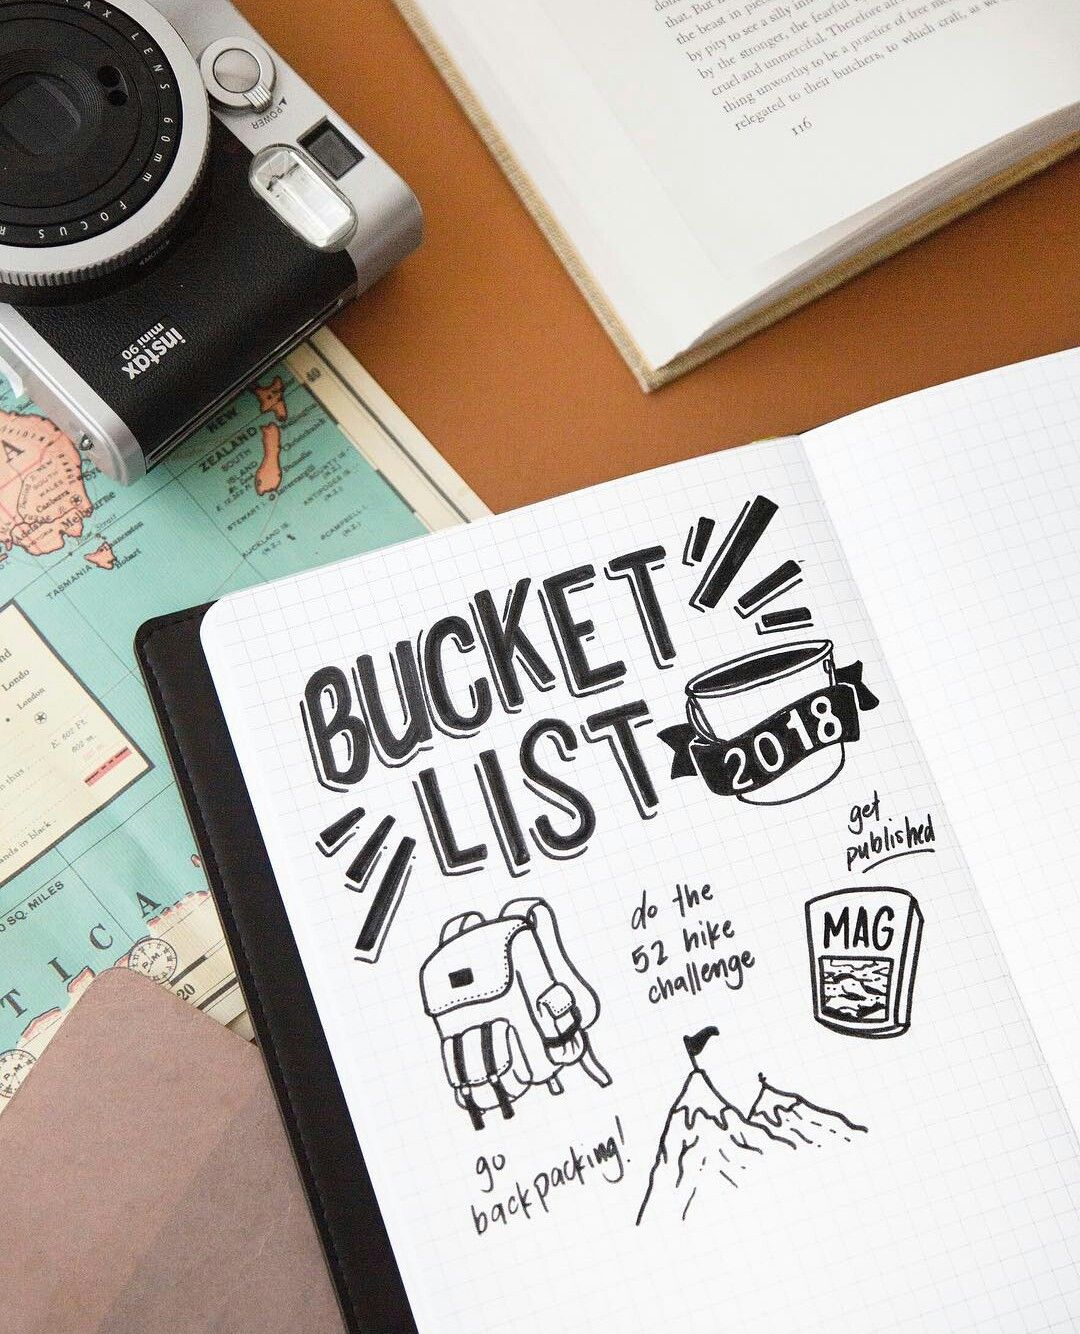 Bucket List In Passion Planner There Are Many Oppurtunities And